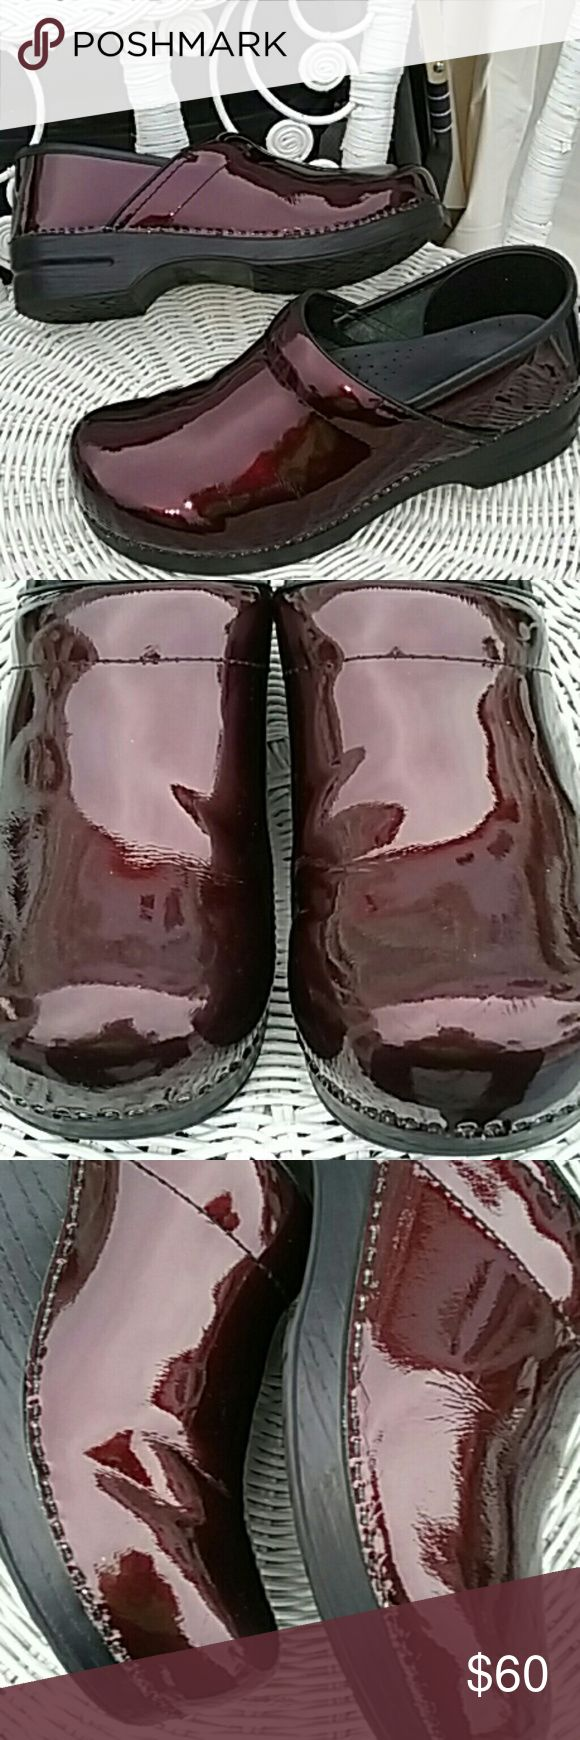 Danskos klogs burgundy patent leather For sale Dansko clogs size 42 burgundy patent leather they are in very good condition there are a few small scratches you have to look very closely they are immaculately clean and a very good shape beautiful shine still on them the heel shows a little wear but off hand they look great Dansko Shoes Mules & Clogs